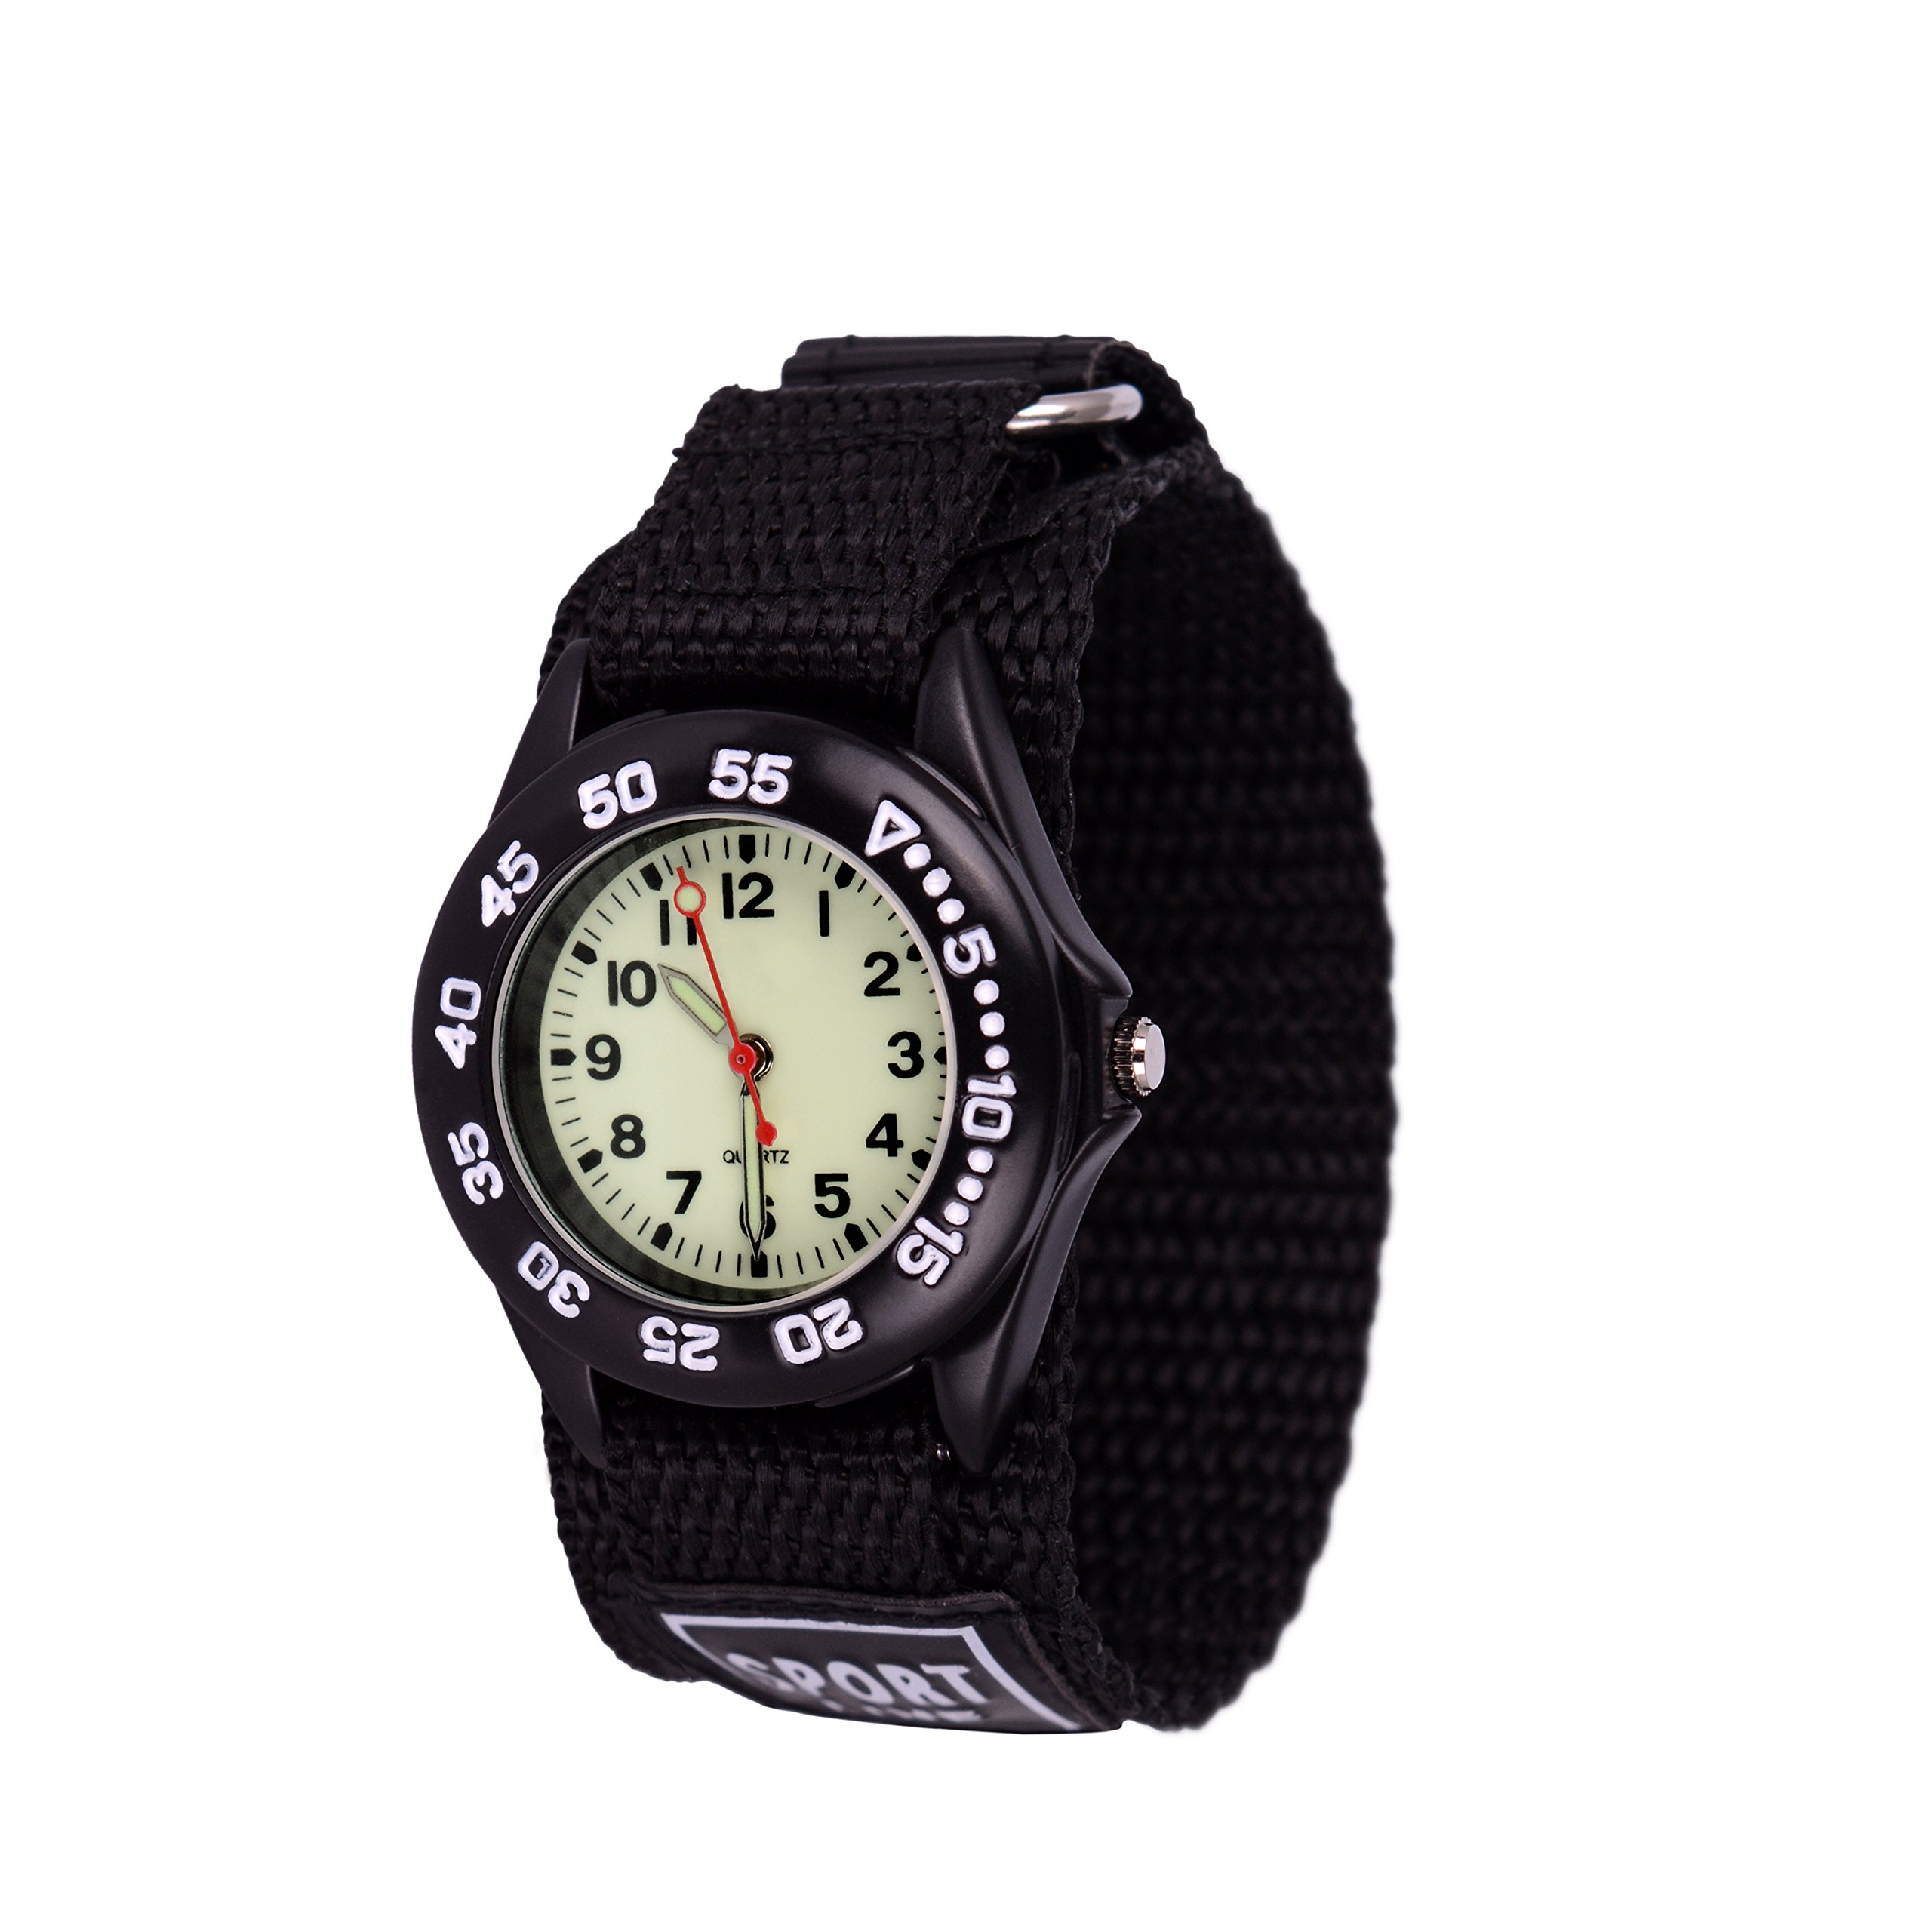 Wolfteeth Analog Watch for Boys Analog Watch with Light Hook and Loop Nylon Band Black 304201